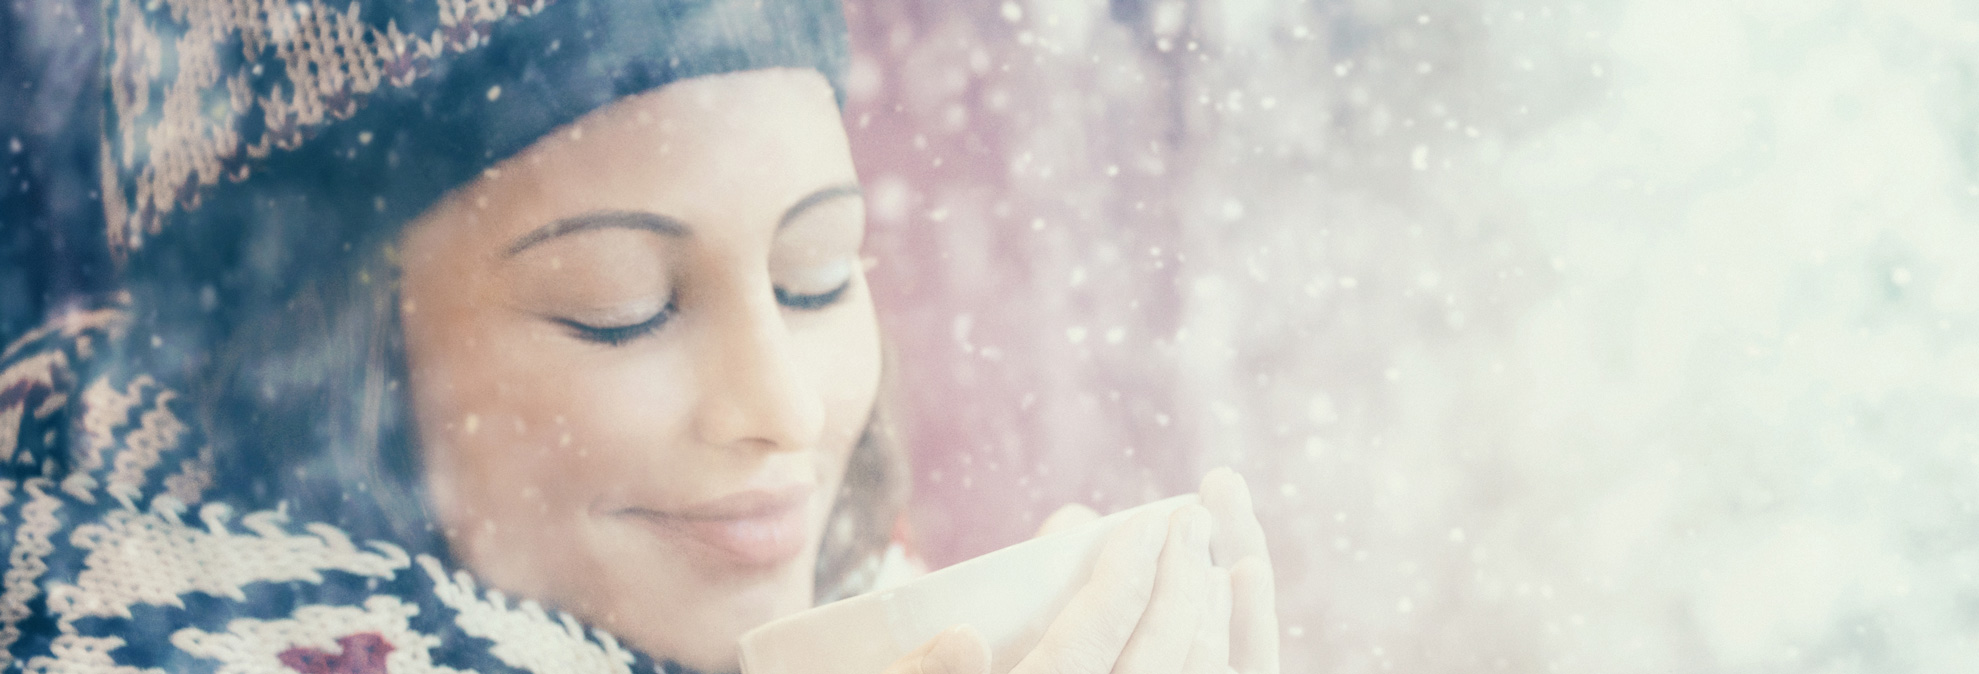 how to prevent dry skin this winter consumer reports